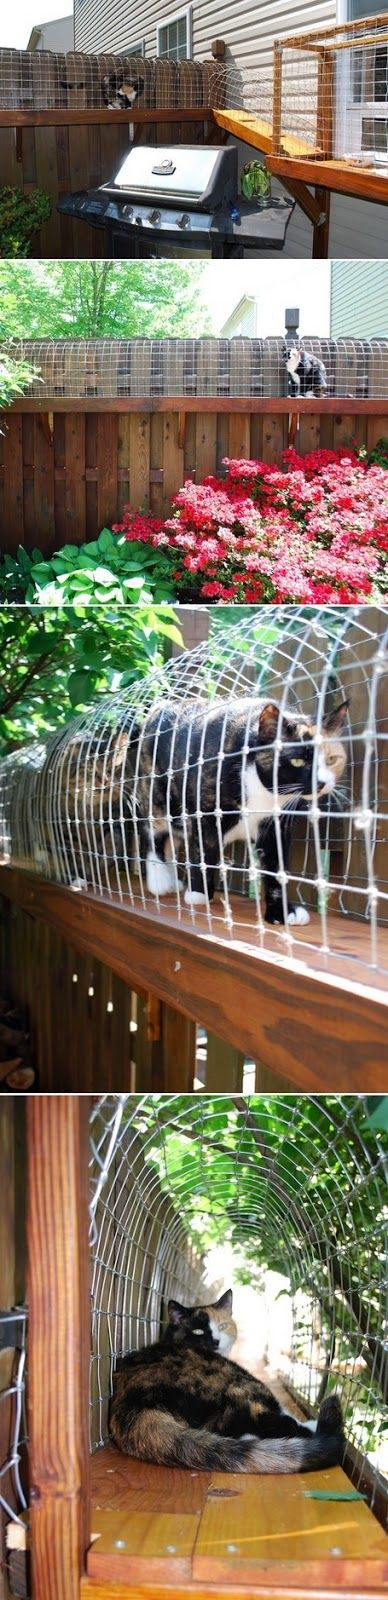 DIY Cat Enclosure for Indoor Cats that Wanna be Outside Cats...HAVE to have this for my cats. @audrey_simmons